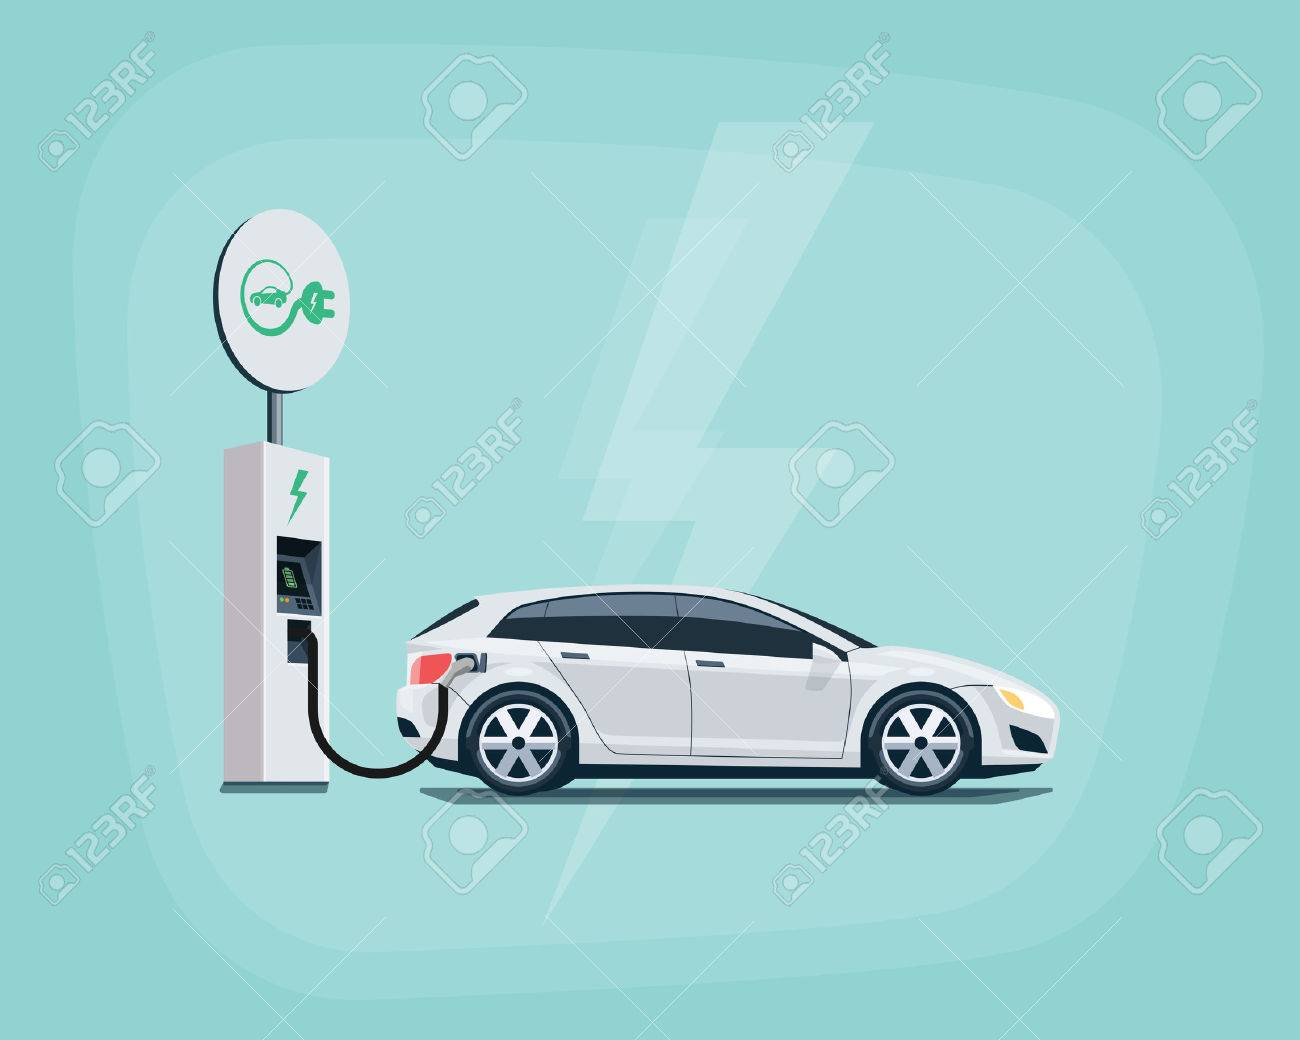 Flat illustration of a white electric car charging at the charger station with road sign. Electromobility eco e-motion concept. Electric car charging on pastel turquoise background. - 60007074